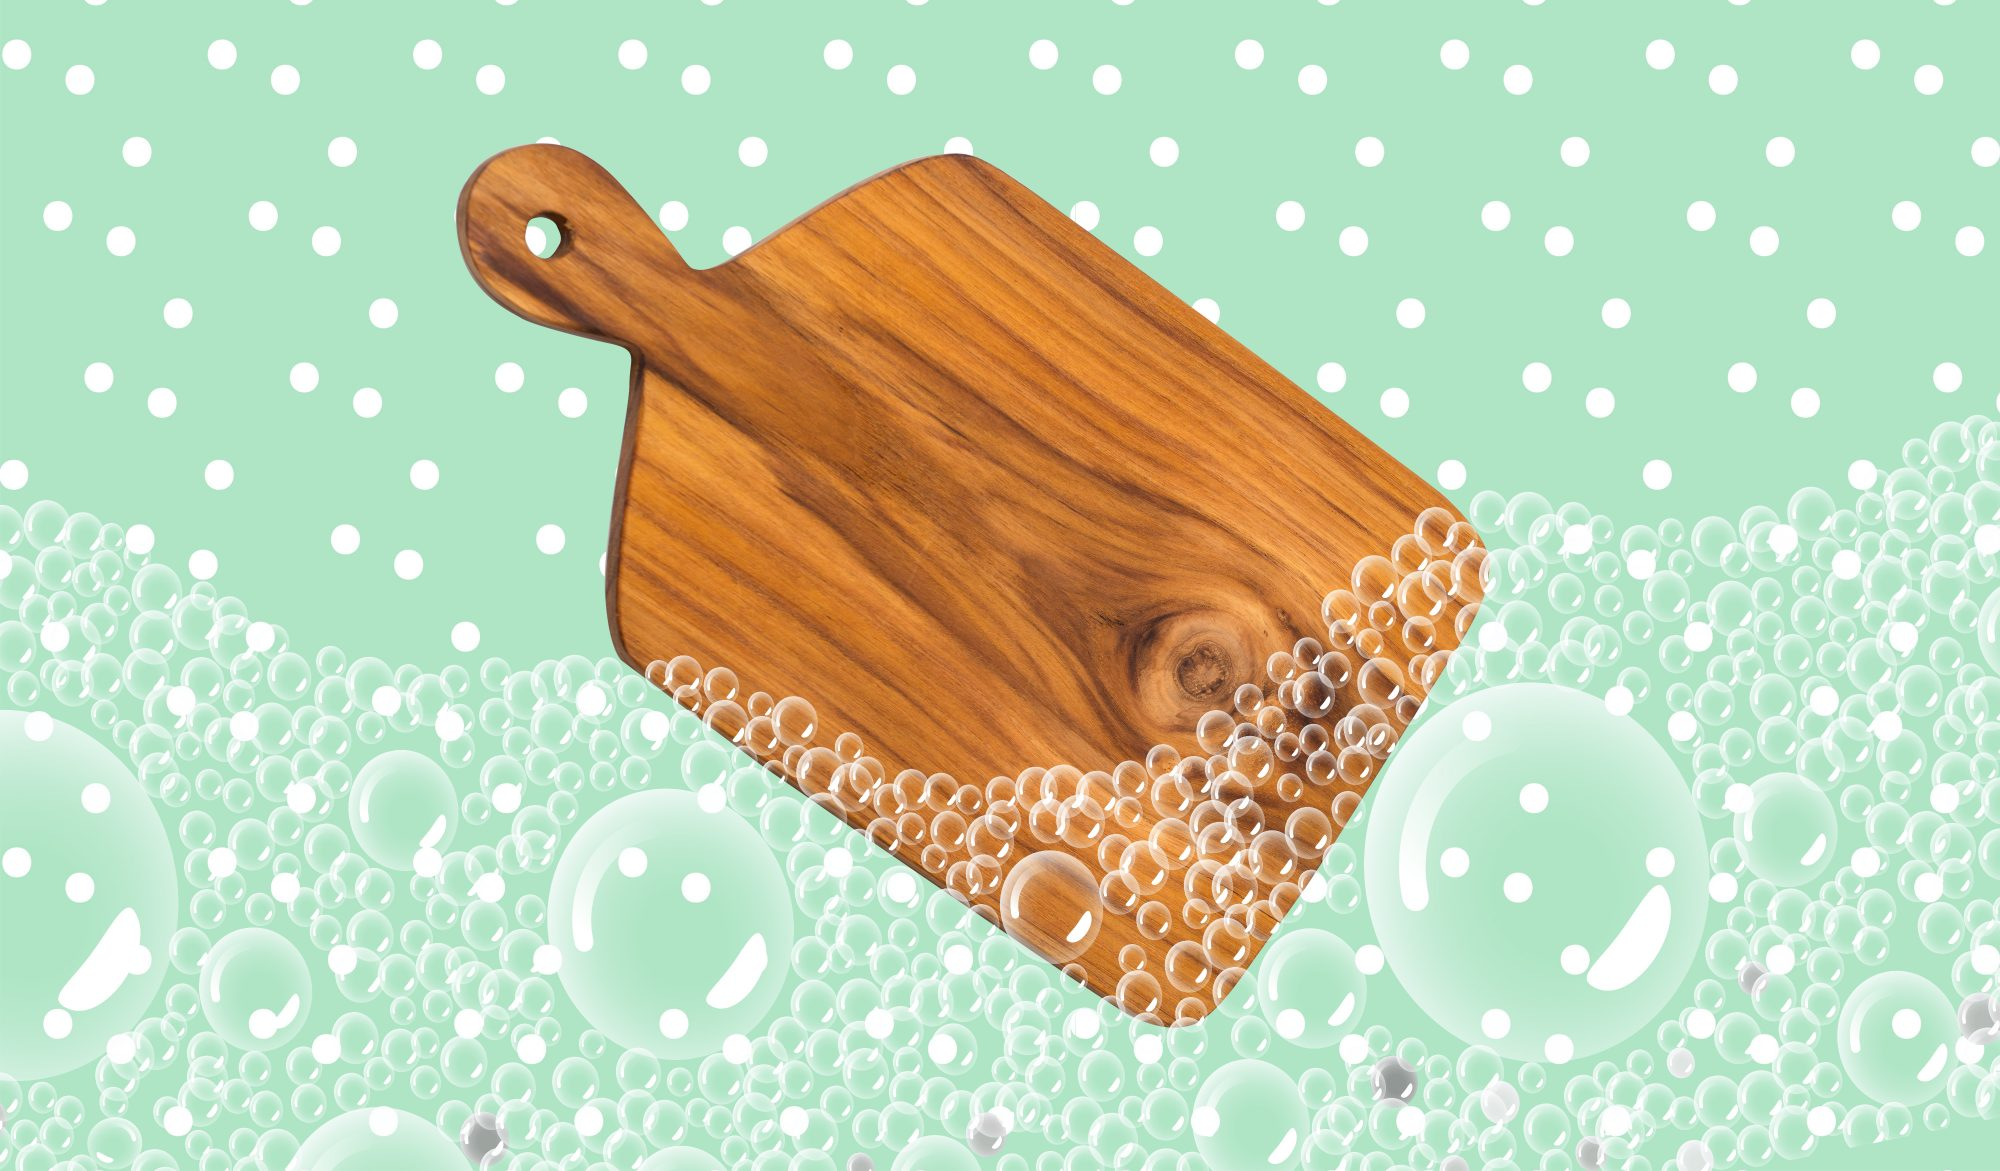 How to Clean Wood Cutting Boards and Keep Them Germ-Free: image of wood cutting board with soap bubbles